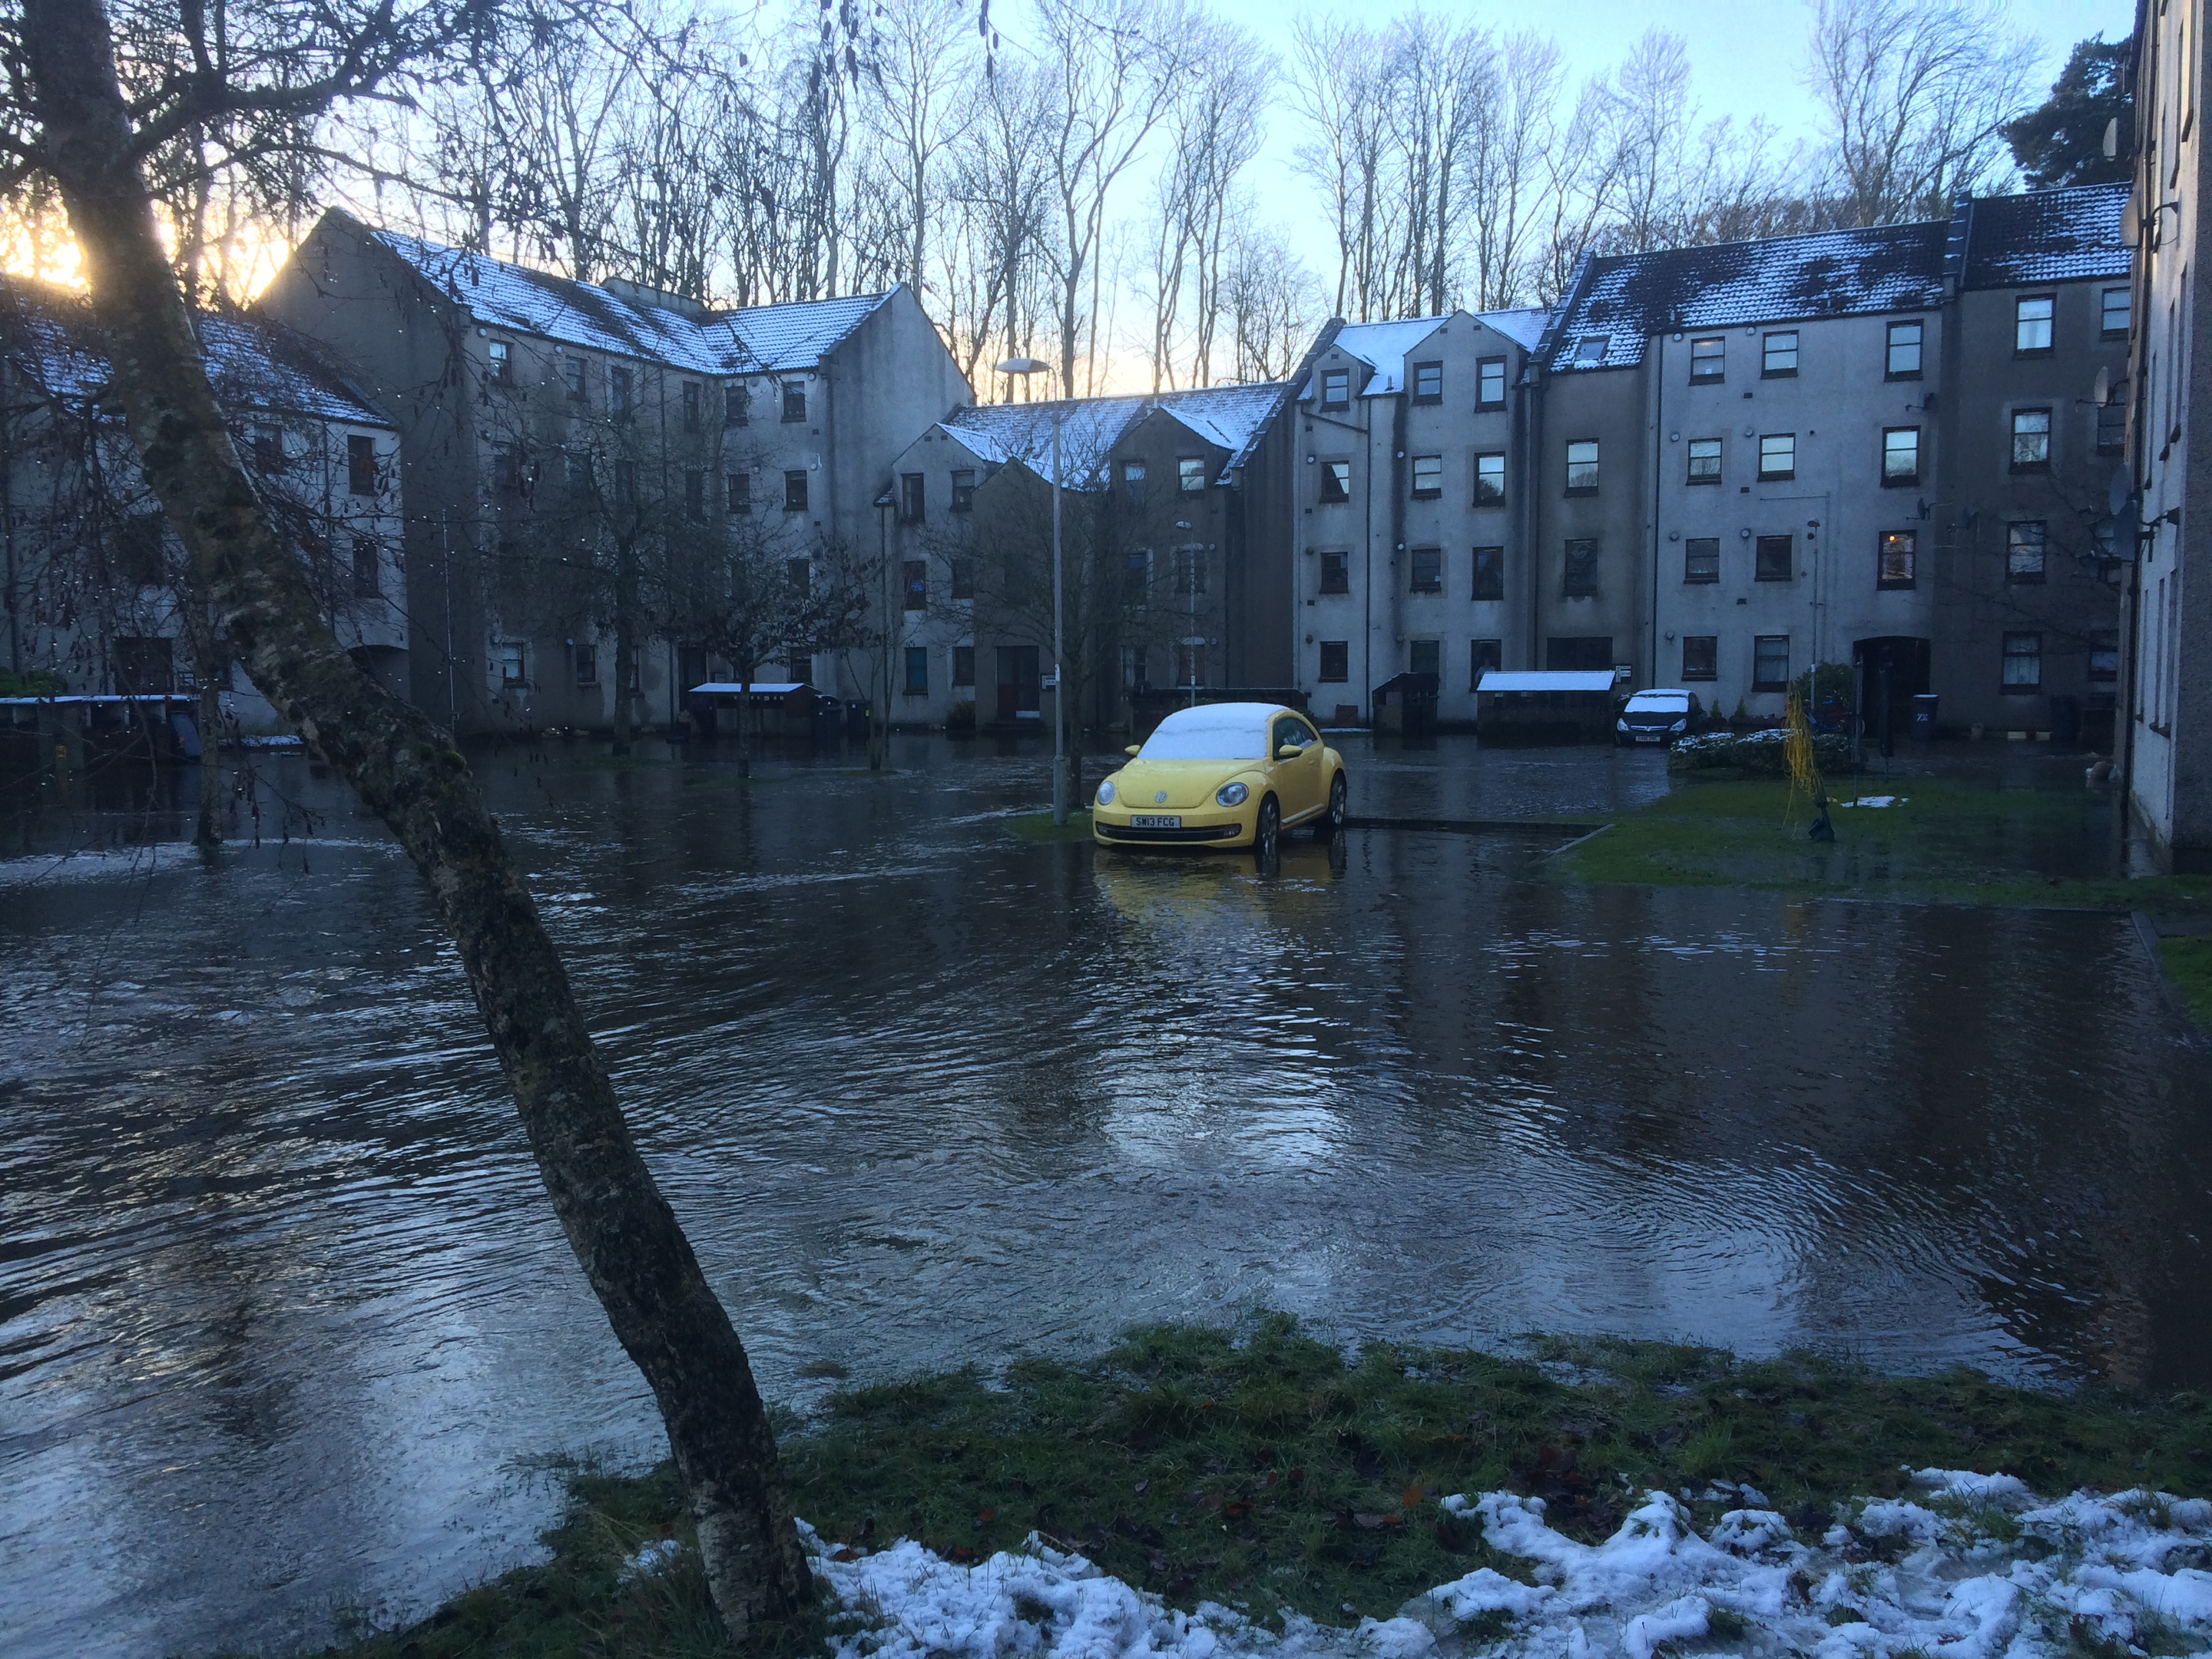 Flood waters breached people's homes in the Millside area.